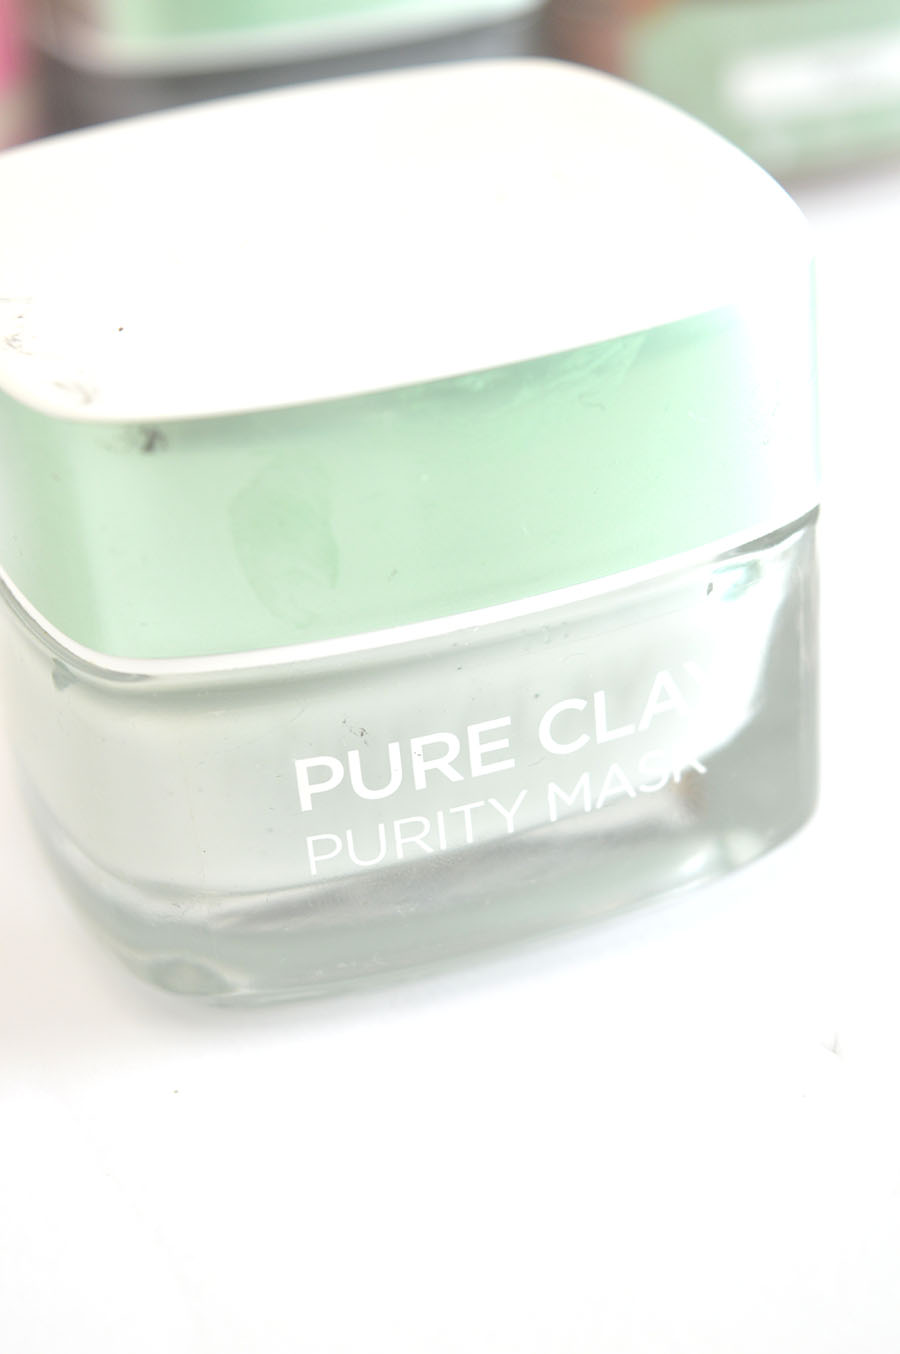 Purity face mask